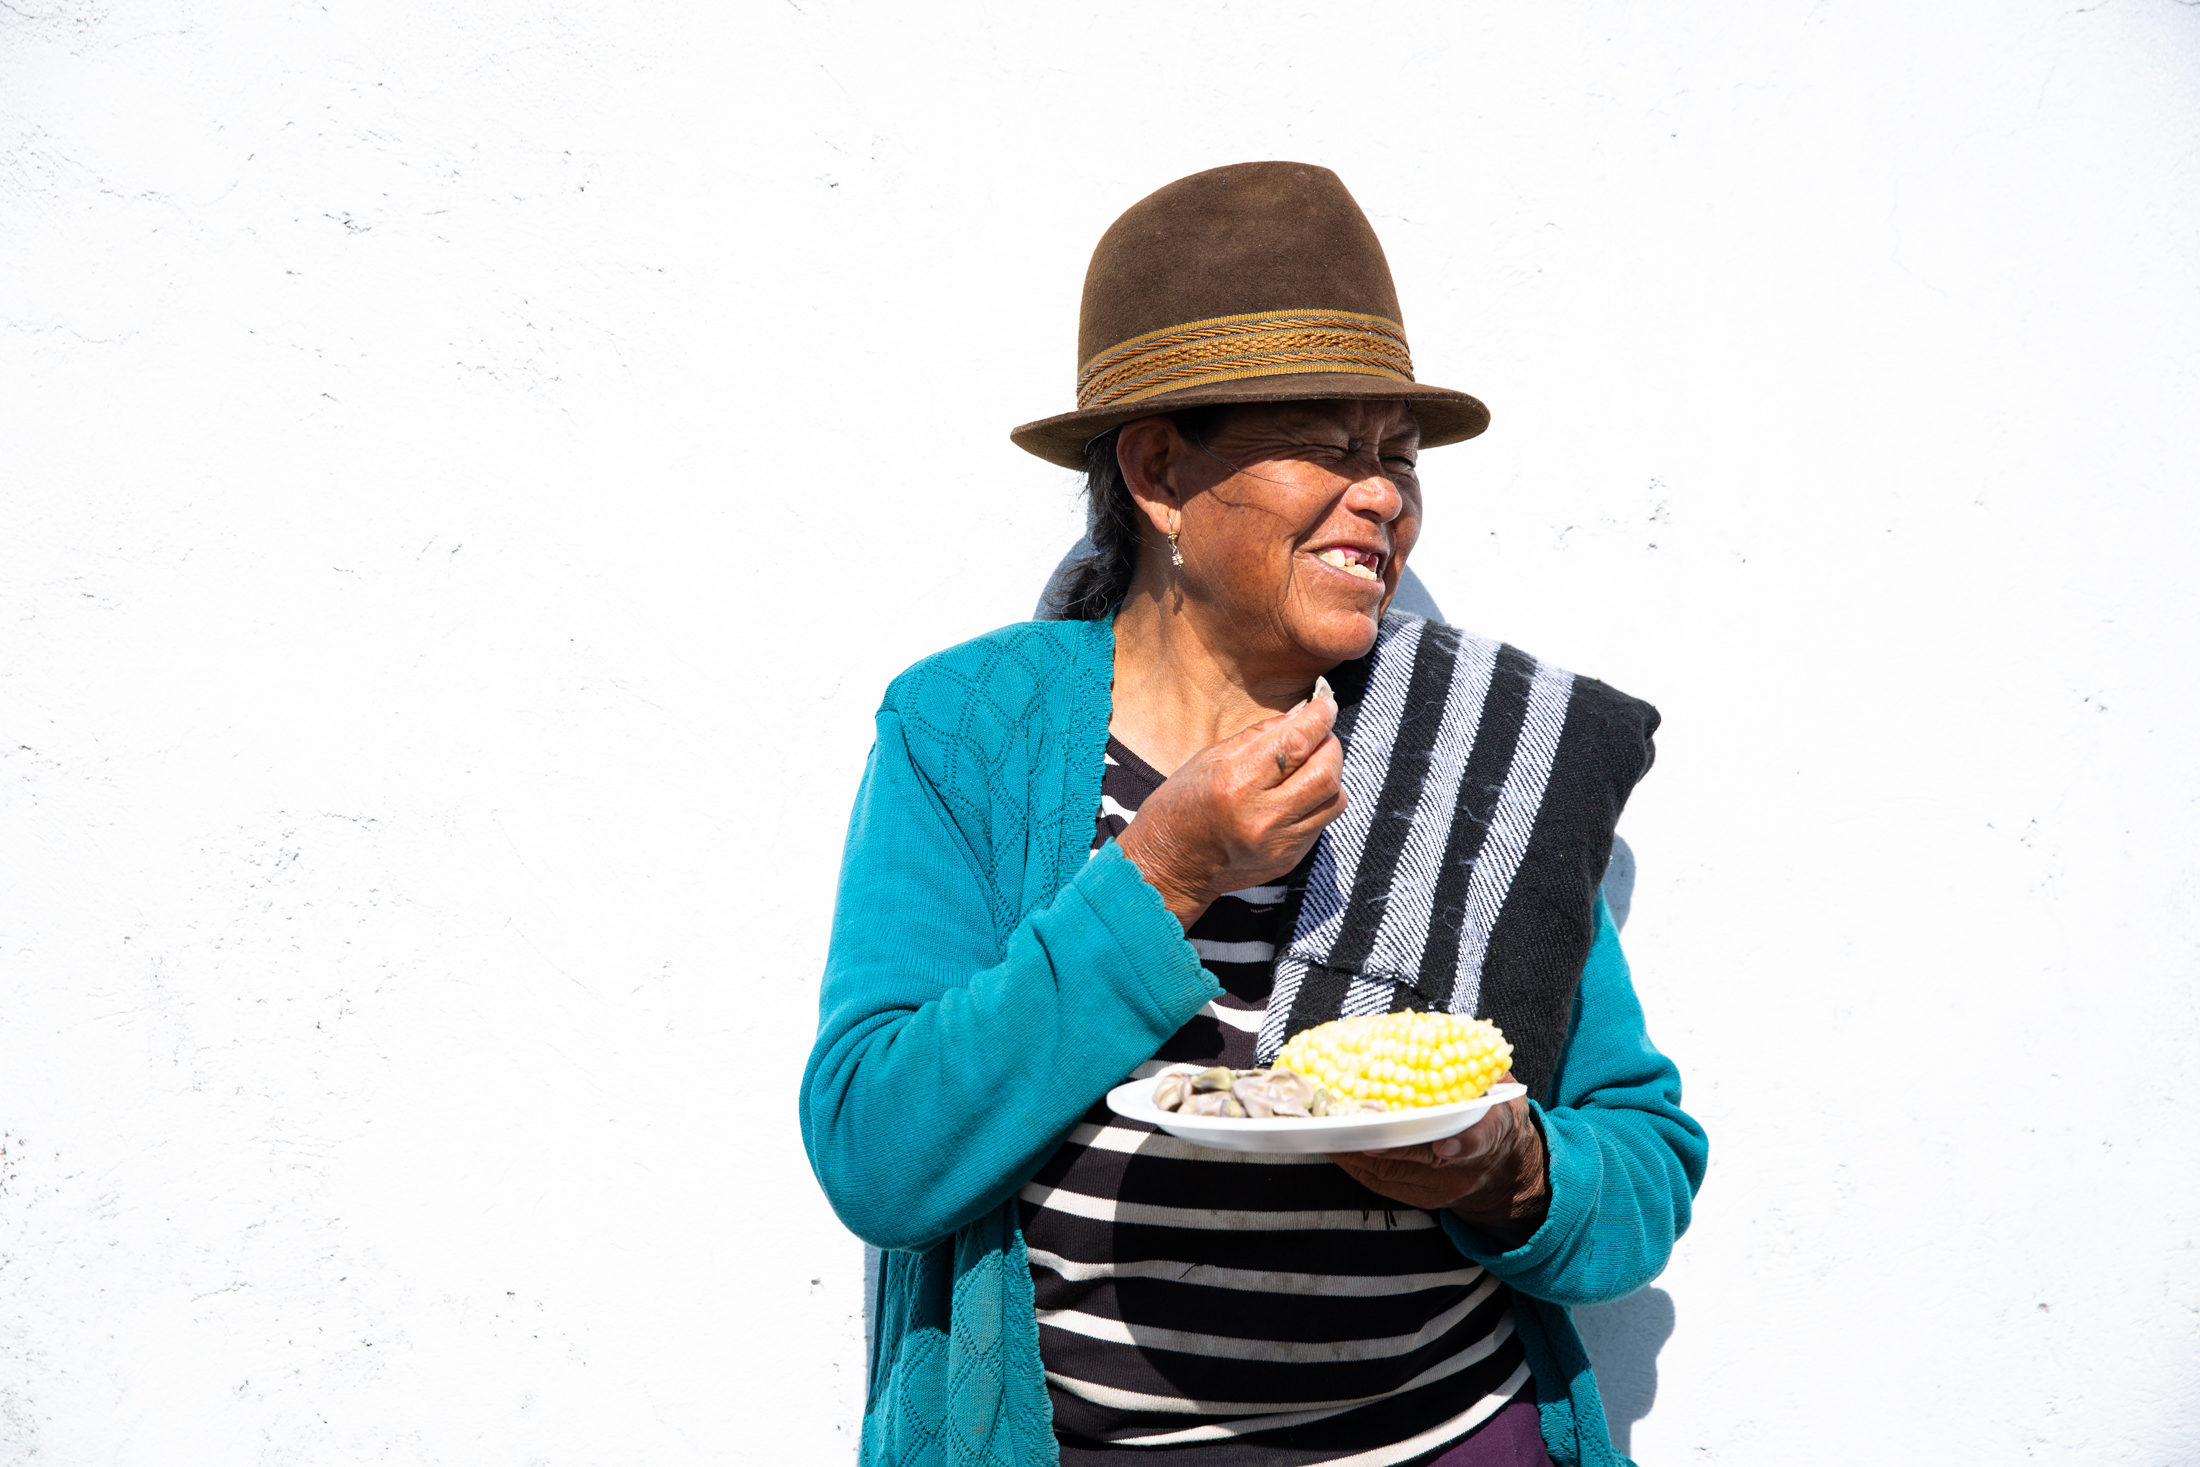 A happy woman eating corn